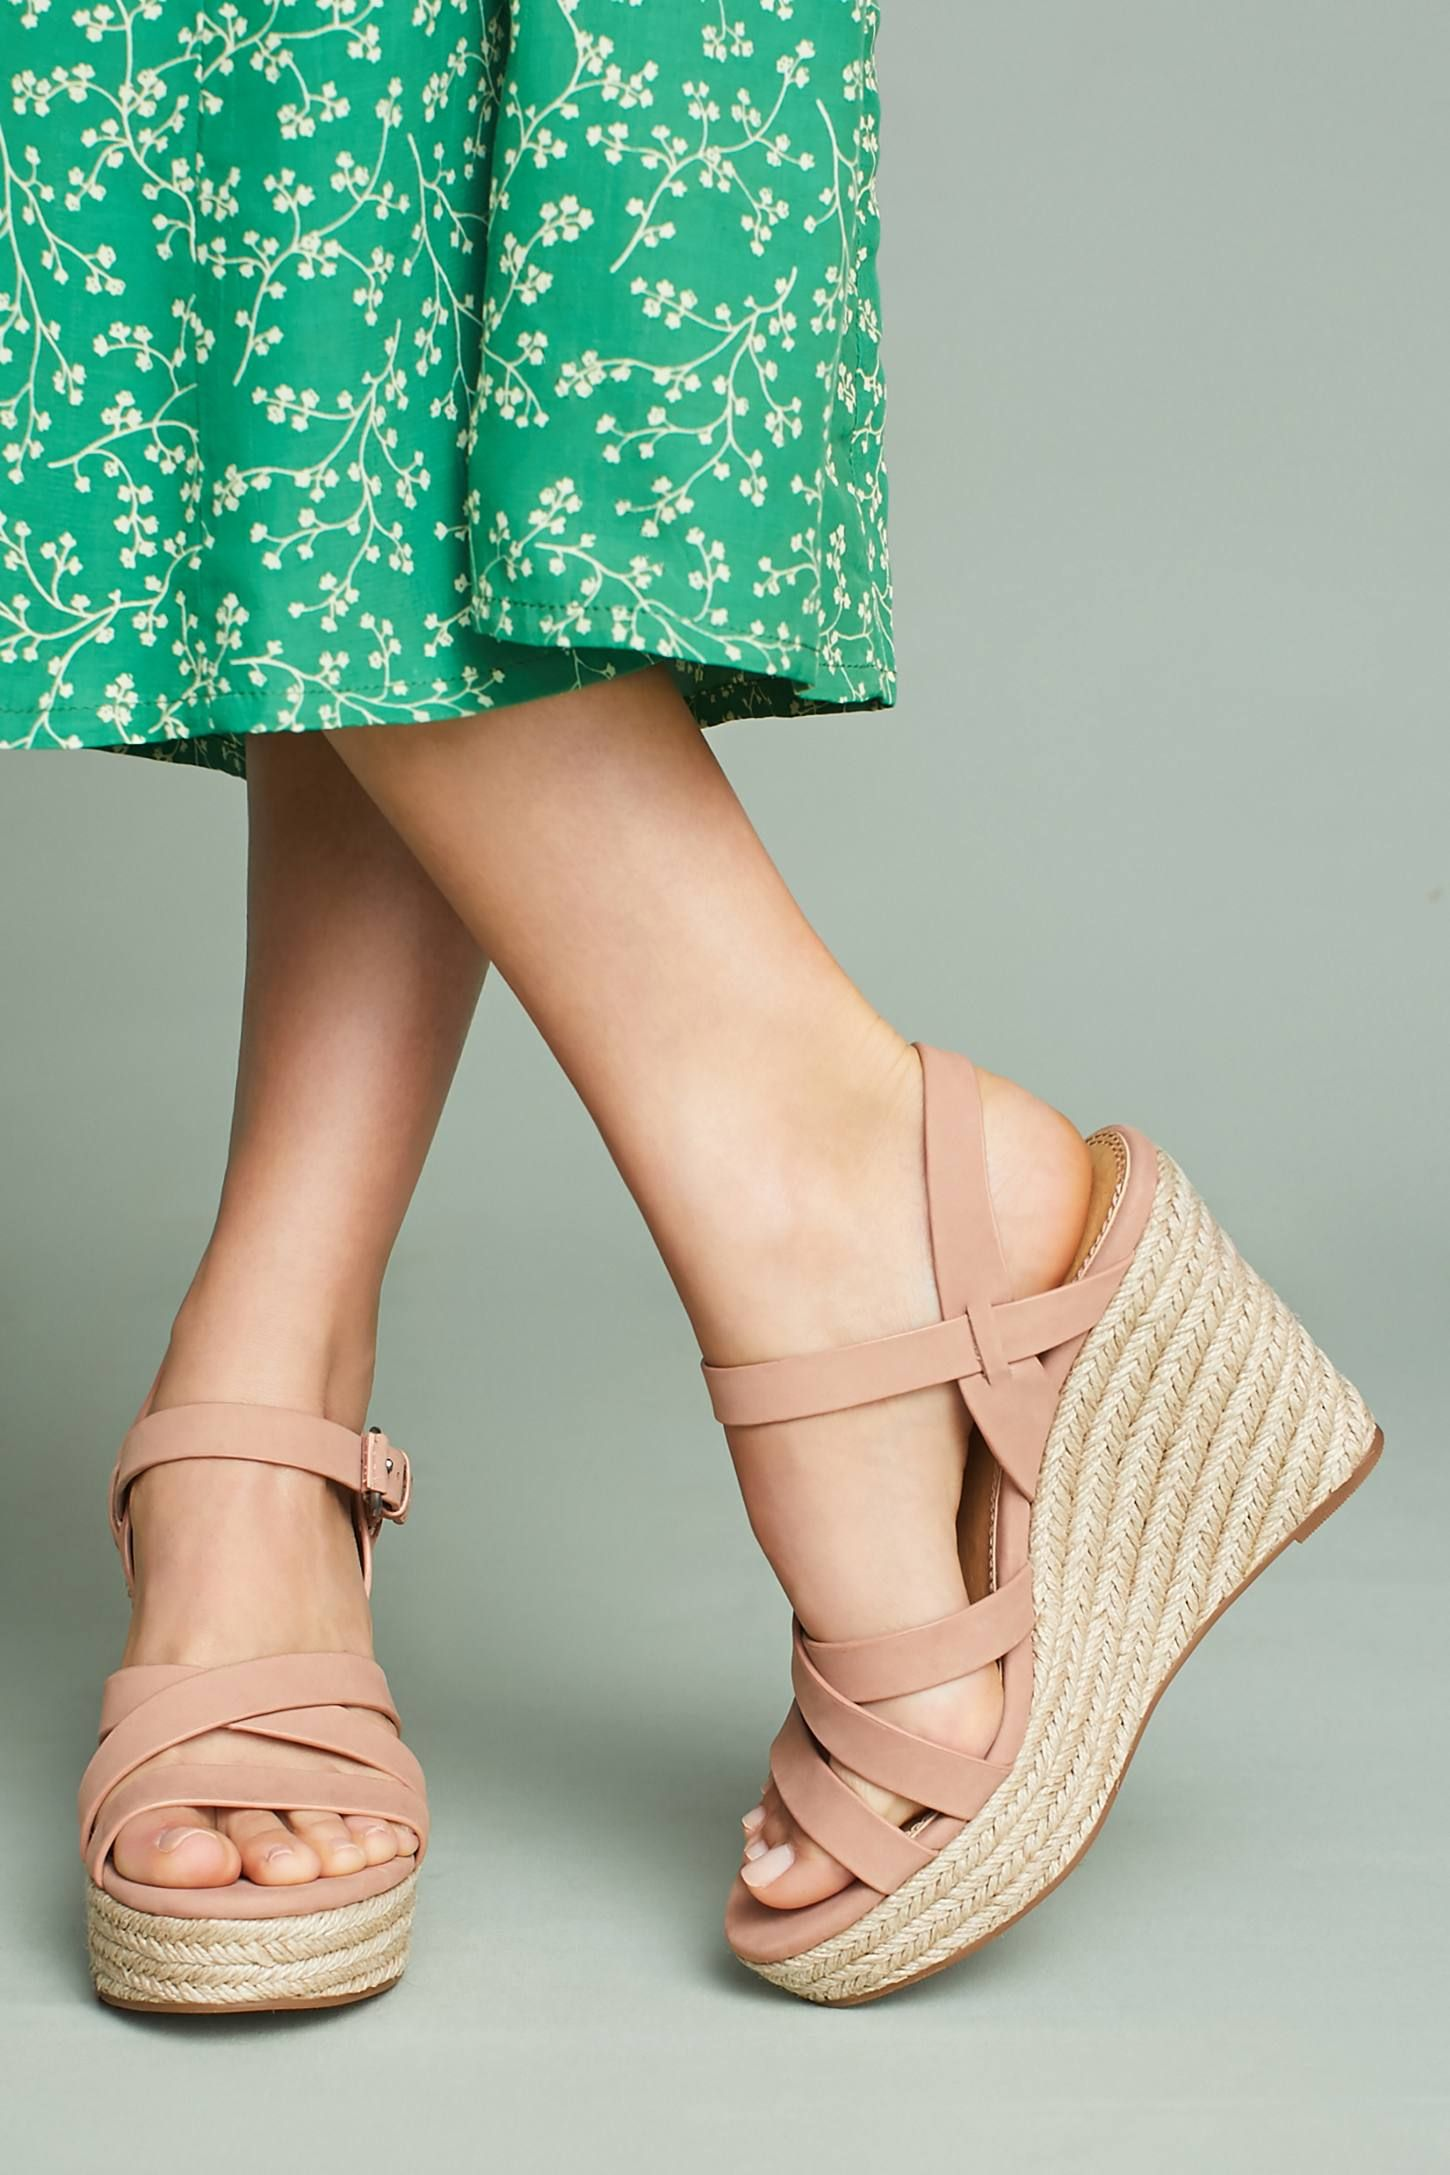 e869fbda4196 Shop the Splendid Billie Espadrille Wedge Sandals and more Anthropologie at  Anthropologie today. Read customer reviews